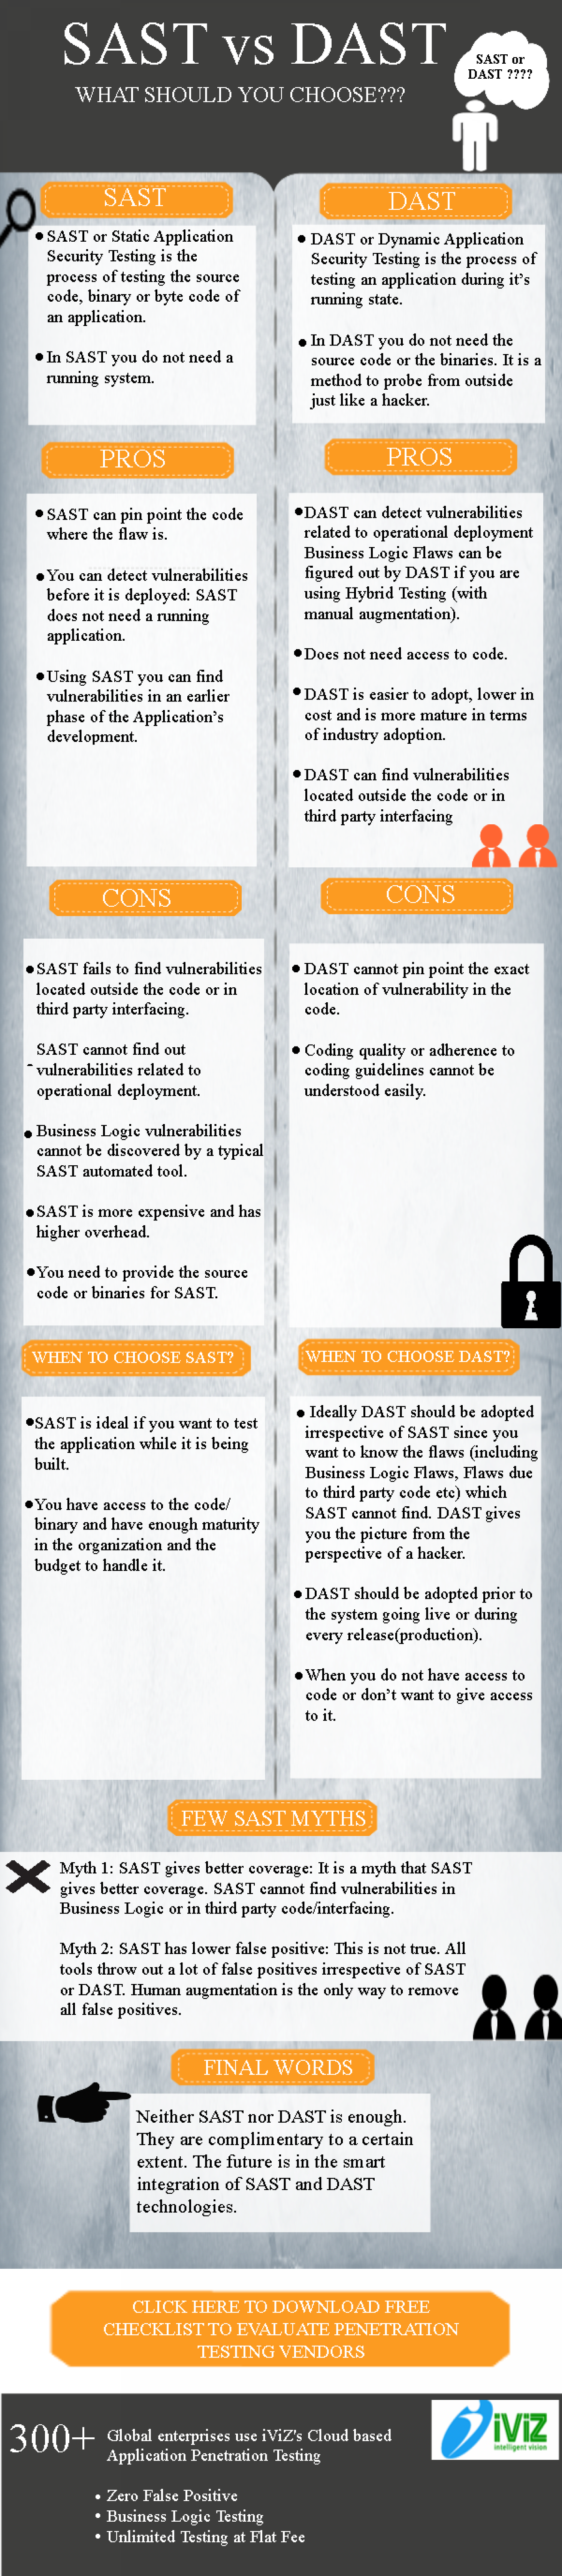 SAST vs DAST: What should you choose? Infographic